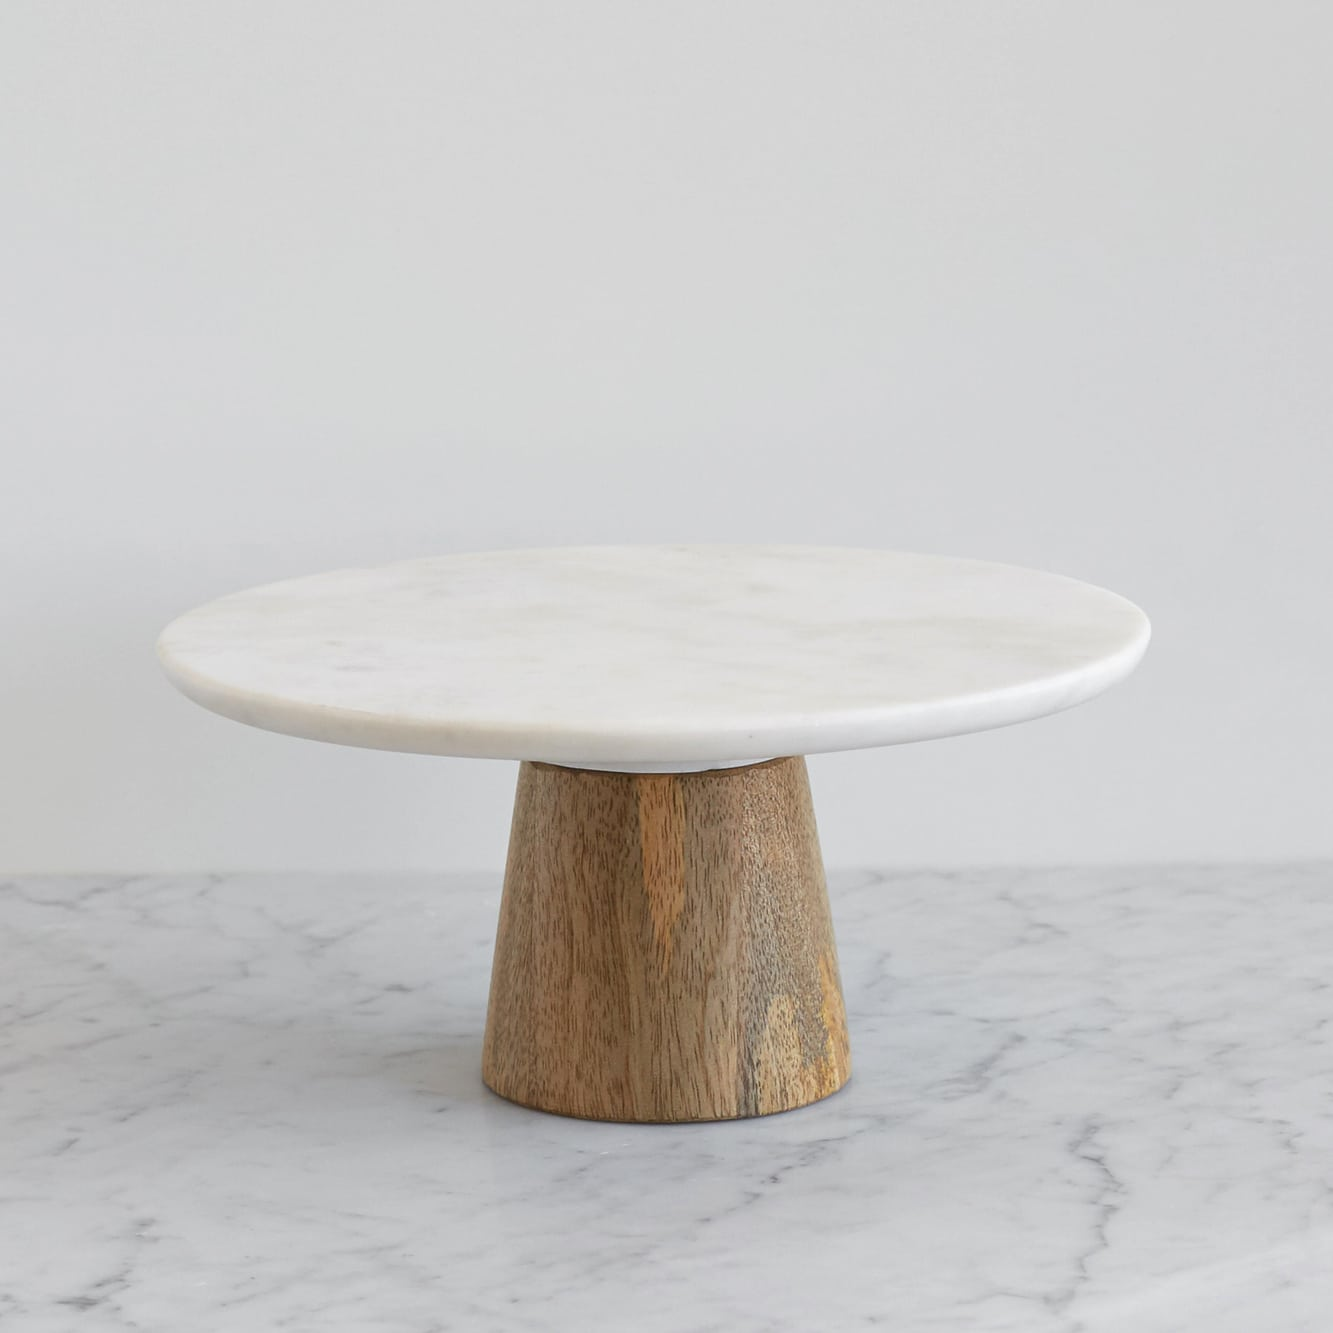 a marble cake stand with a wood base